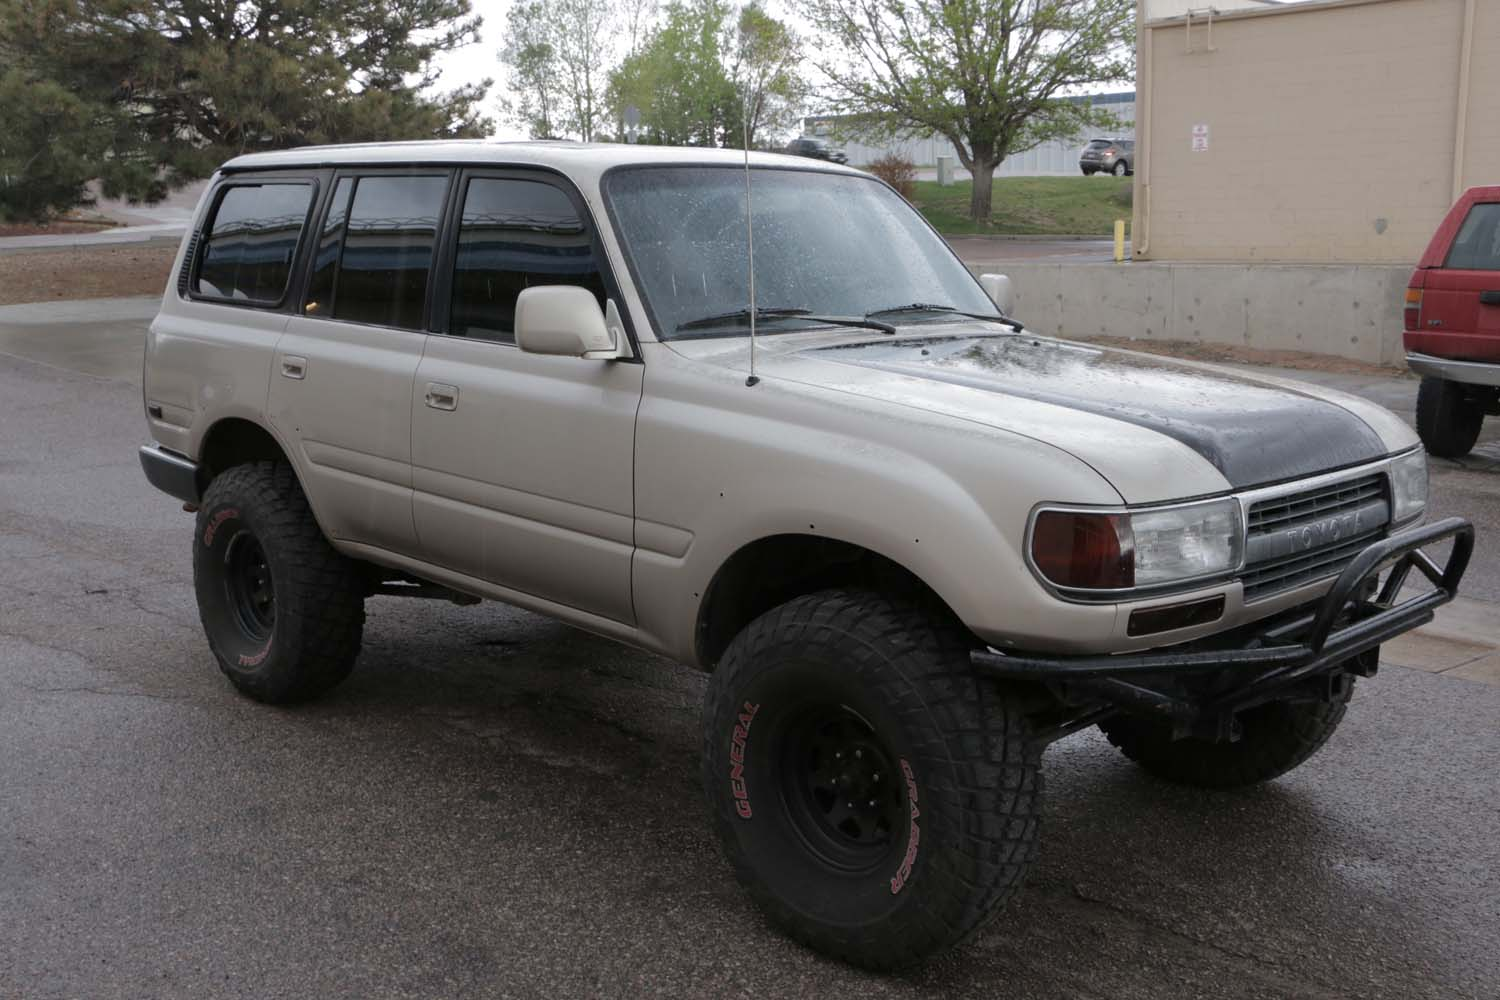 For Sale: 1991 Toyota Land Cruiser FJ80, Lifted, $3,750